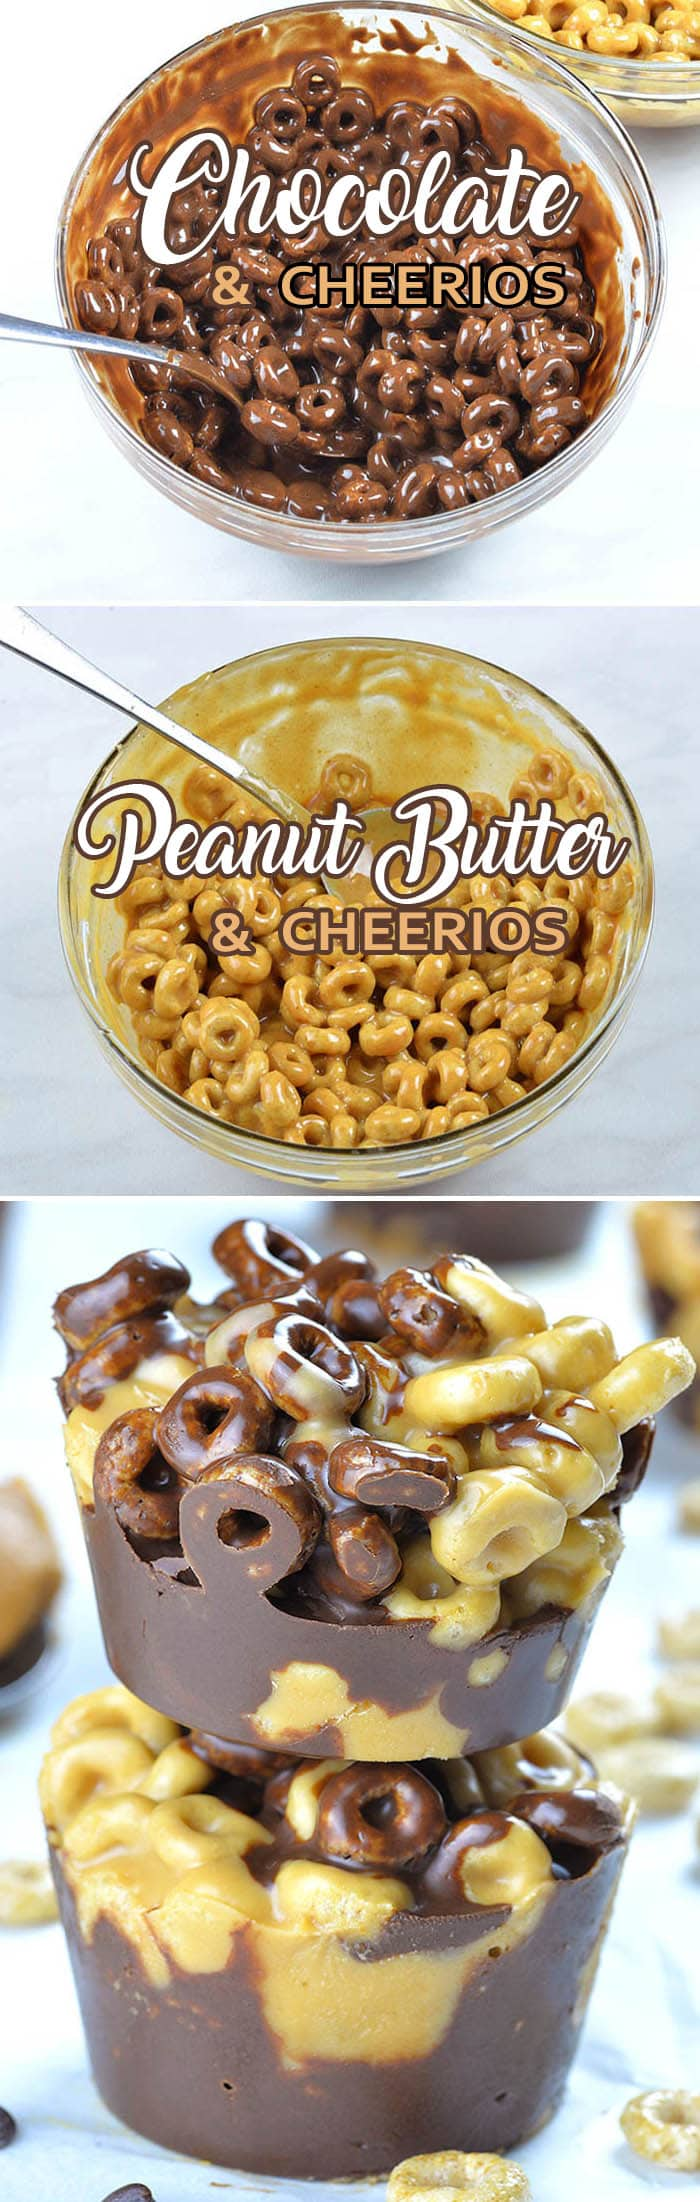 Chocolate Peanut Butter Cheerios Cups are quick and easy no bake dessert or snack with only 5 healthy ingredients. These yummy bites are made with Cheerios cereals, dark chocolate, organic coconut oil, peanut butter and organic brown rice syrup.